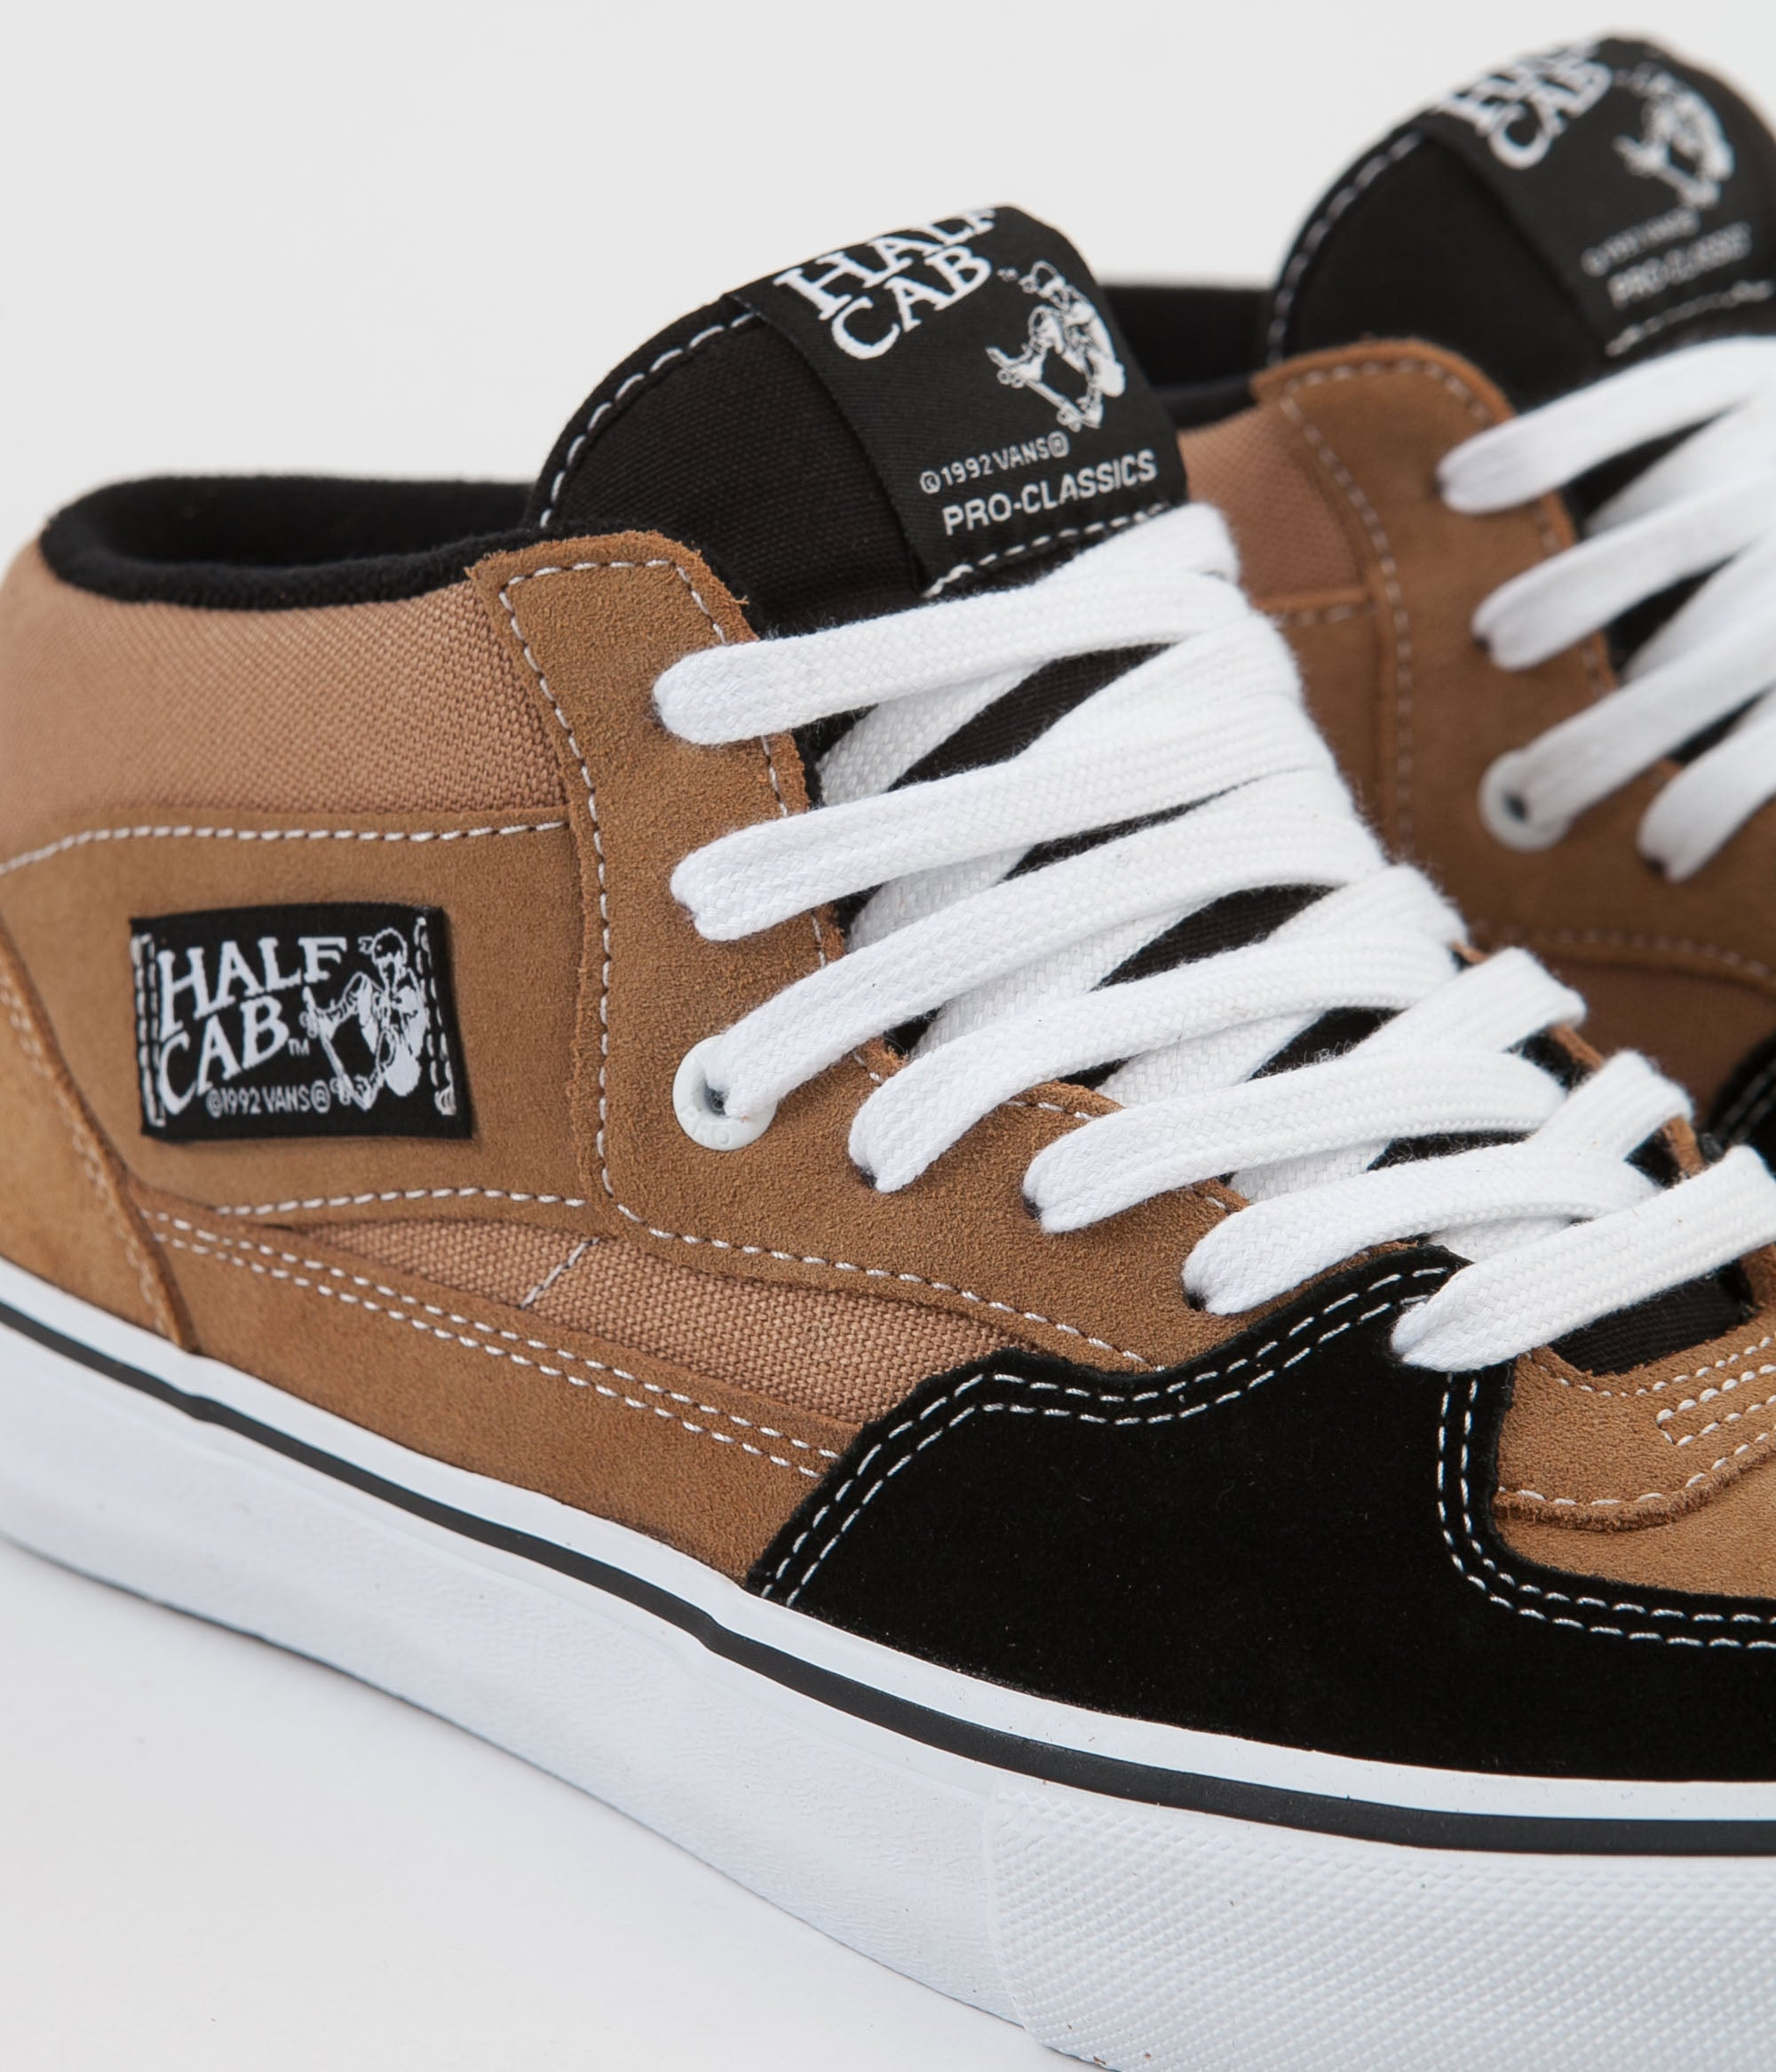 Vans Half Cab Pro Shoes - Camel / Black